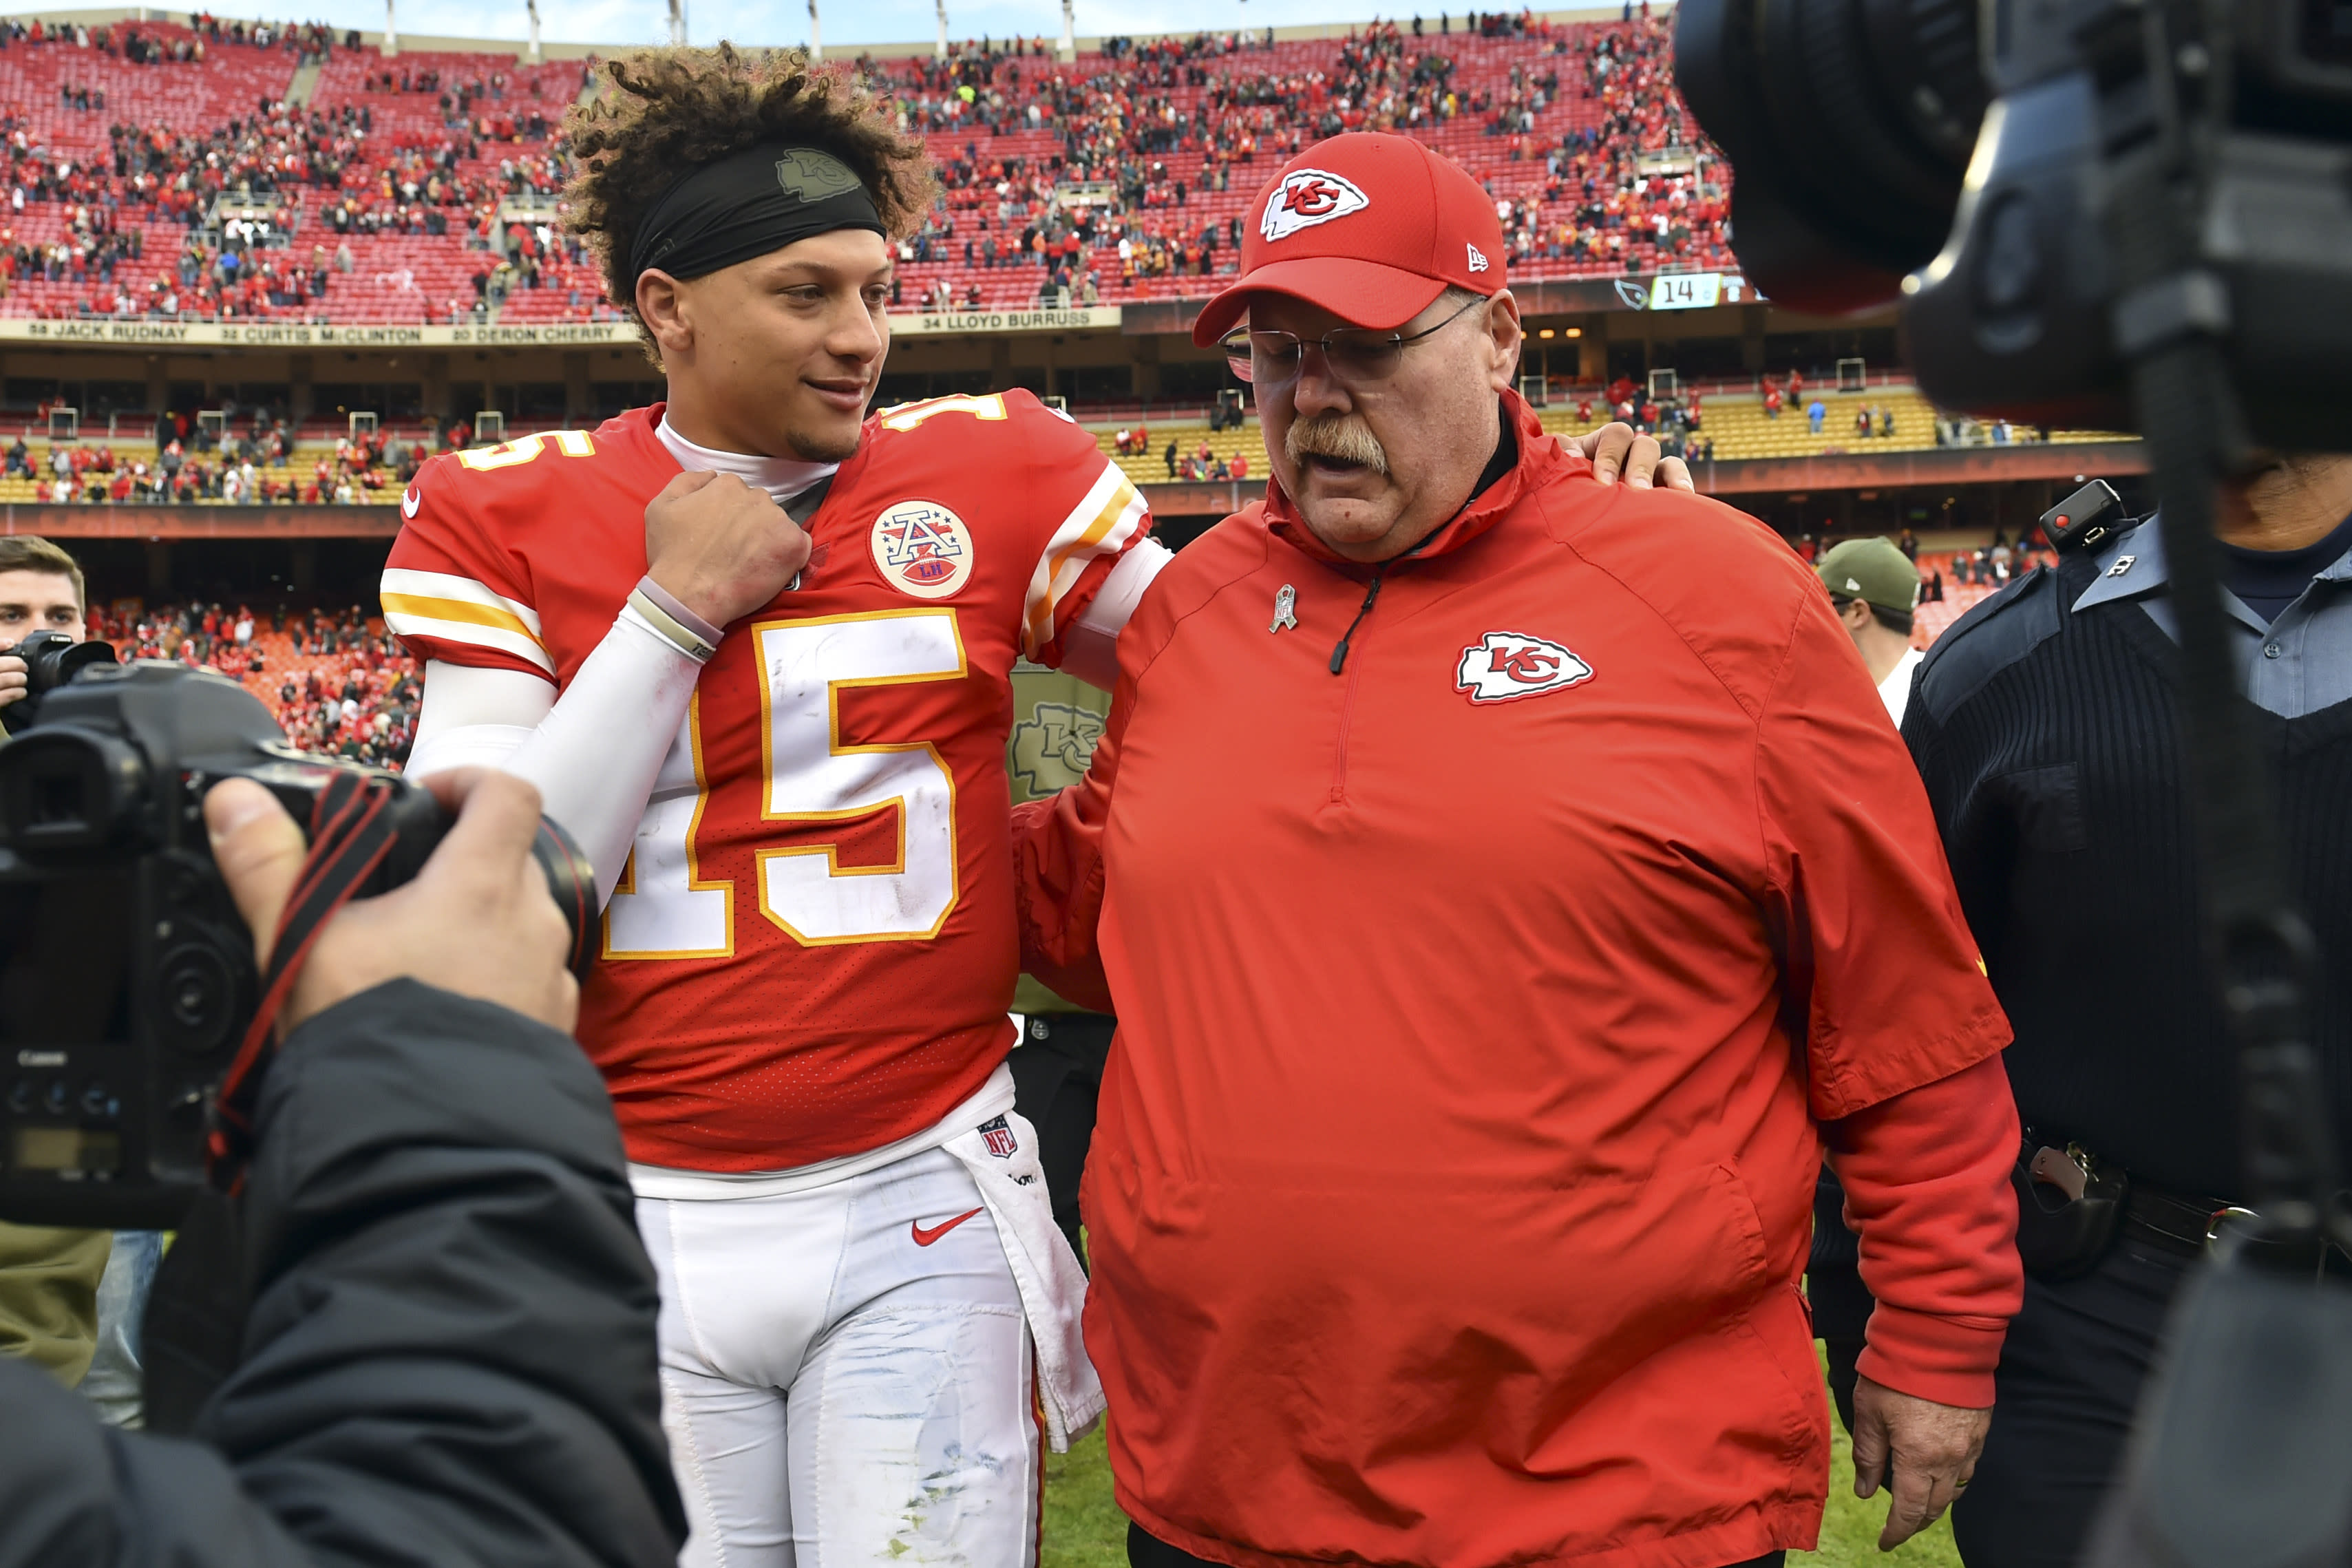 A lot of people are happy to see the Chiefs reach their first Super Bowl in 50 years